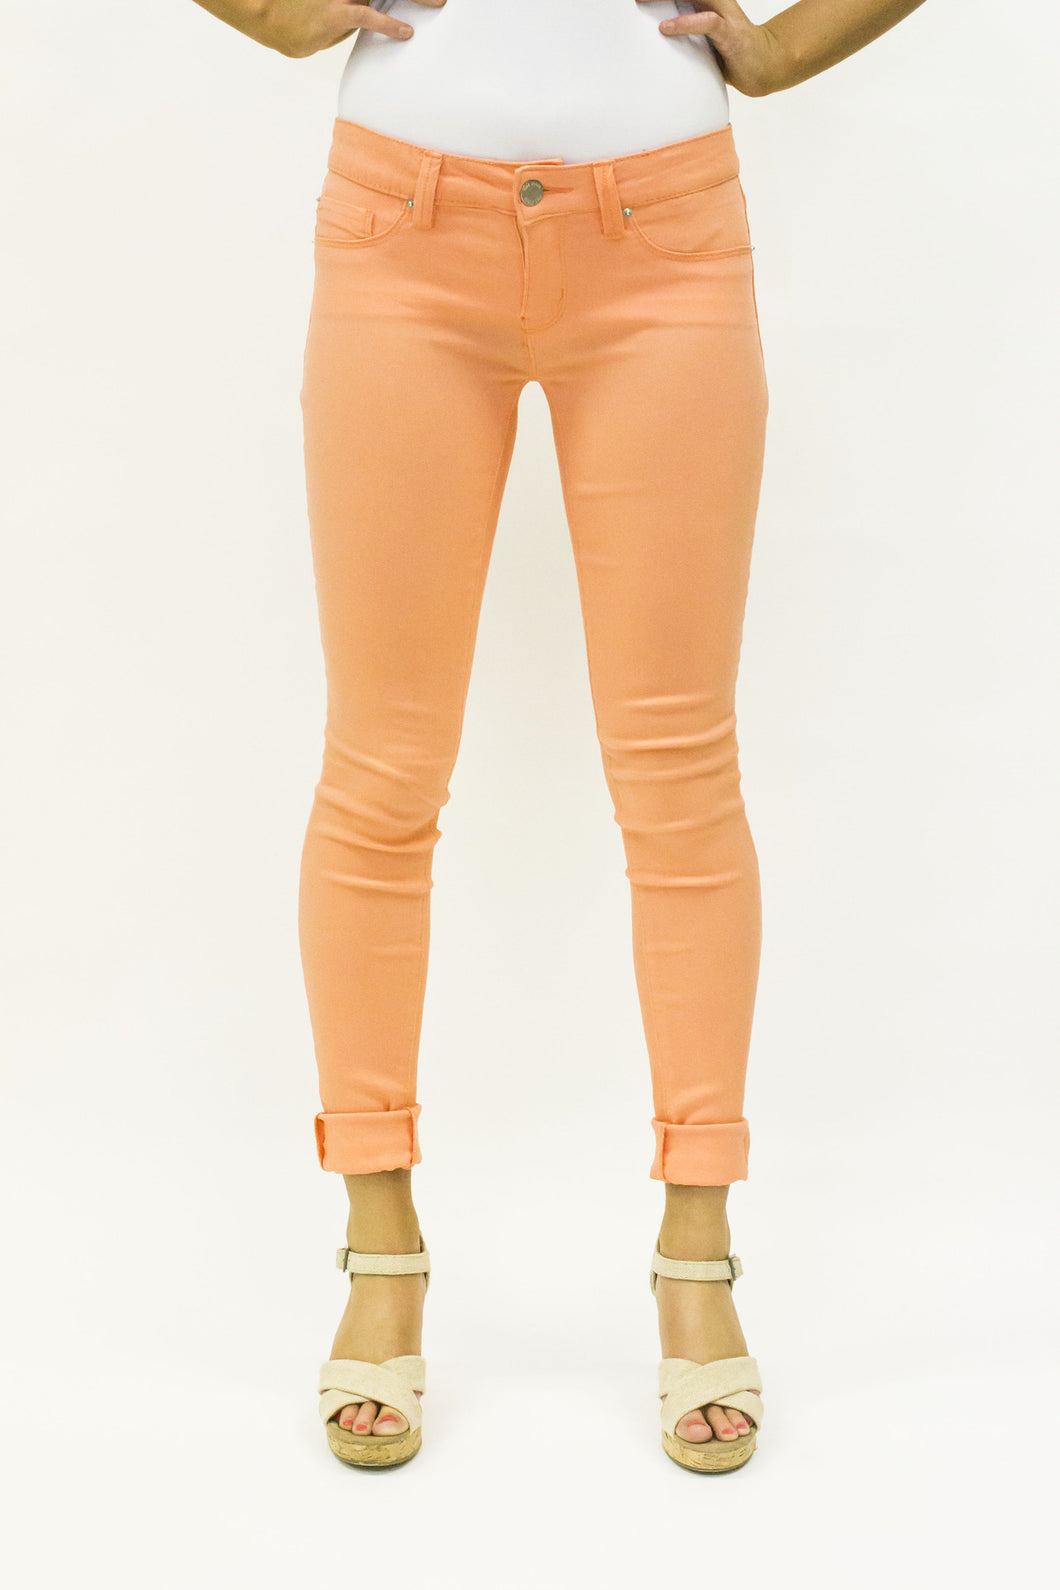 YMI Royalty For You Junior Hyper Stretch Skinny Nectarine | All Dec'd Out